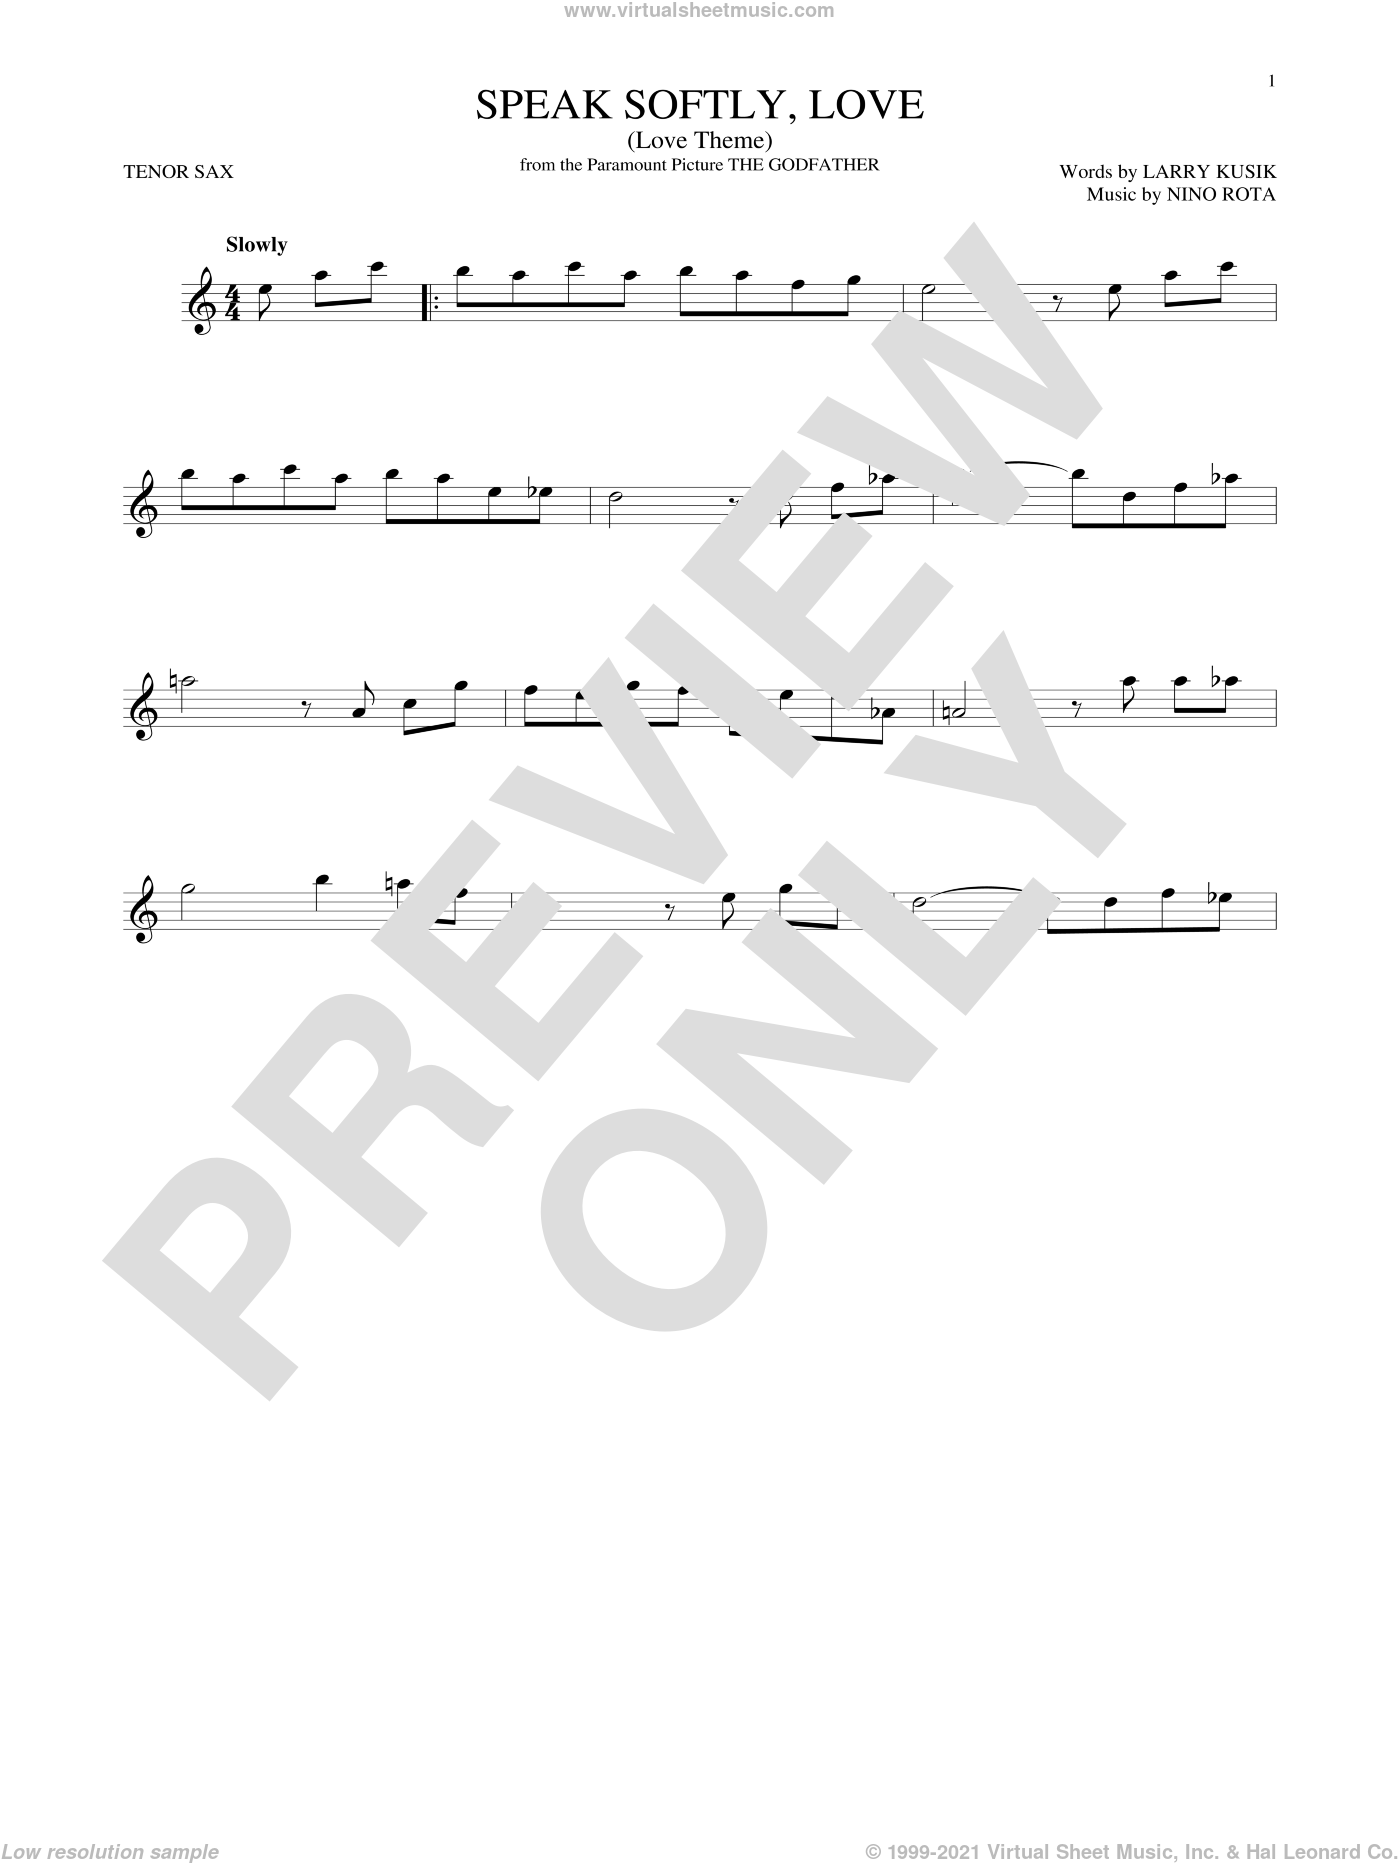 Speak Softly, Love (Love Theme) sheet music for tenor saxophone solo by Andy Williams, Larry Kusik and Nino Rota, intermediate skill level